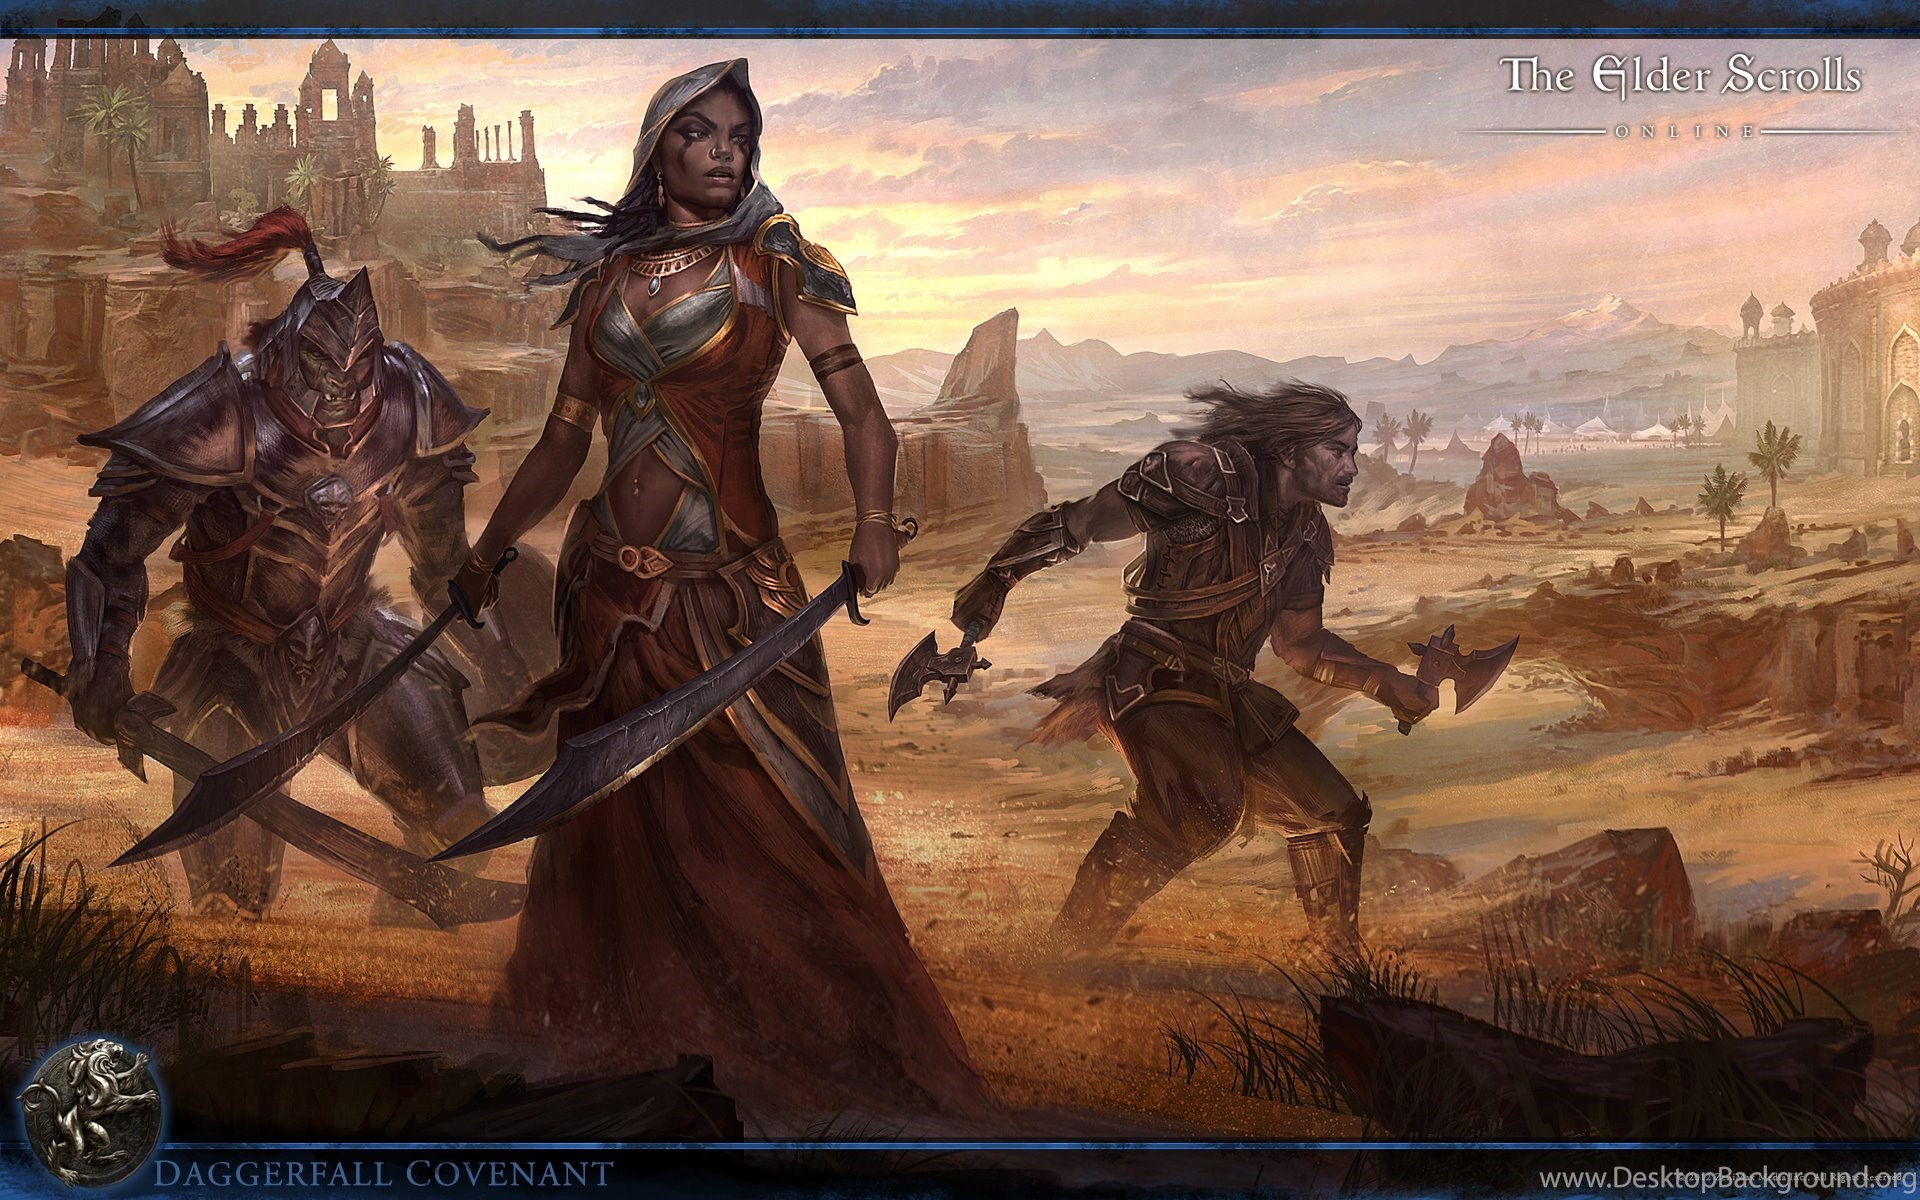 Wallpapers The Elder Scrolls Online Daggerfall The Elder